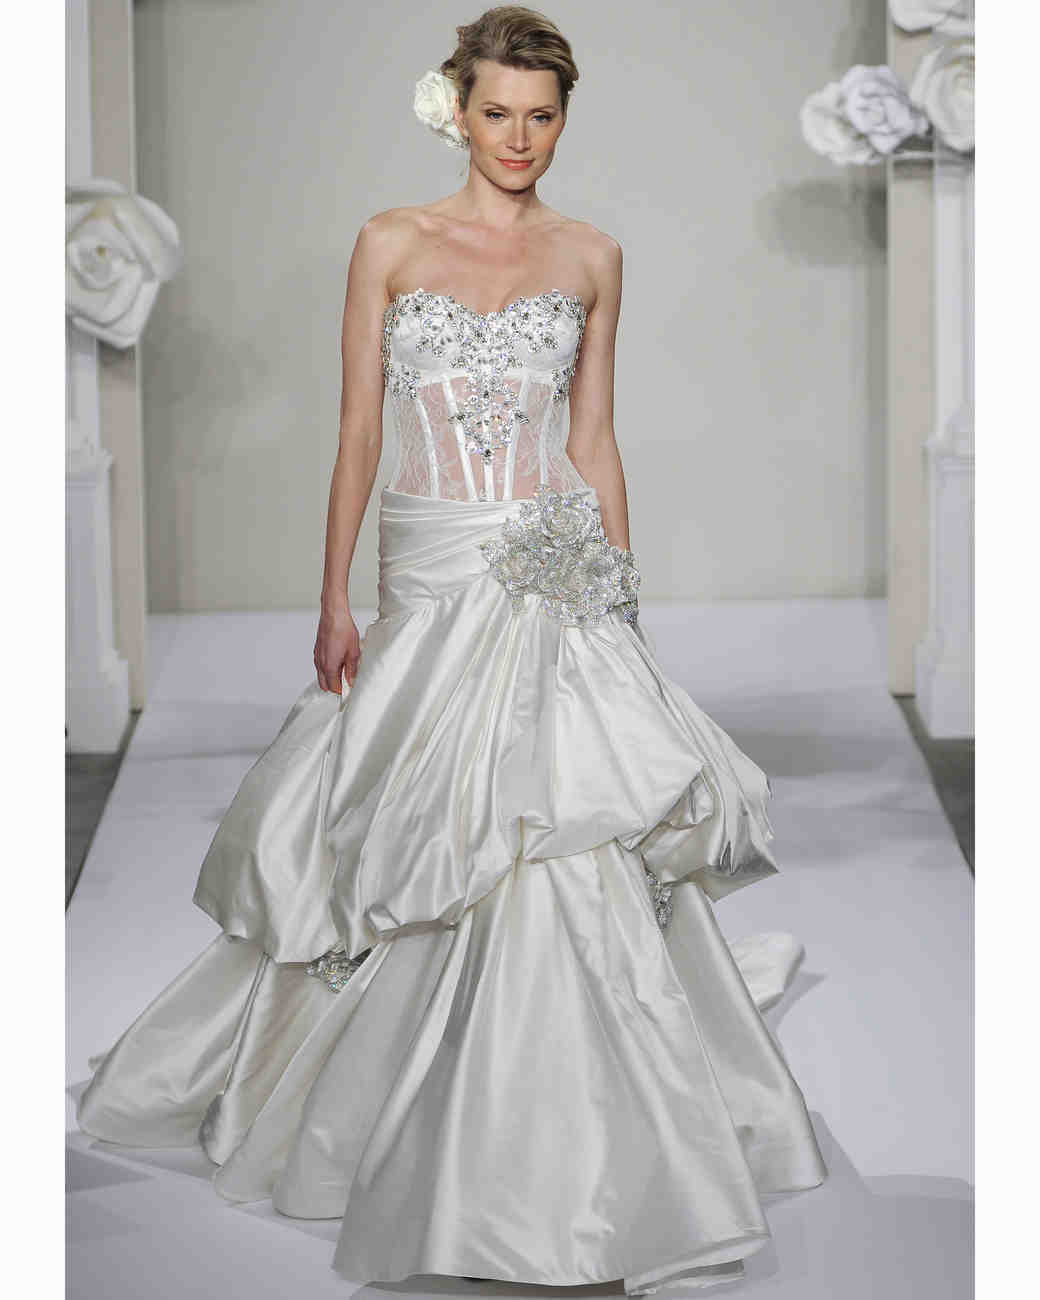 Pnina tornai for kleinfeld fall 2013 collection martha for Kleinfeld wedding dresses sale